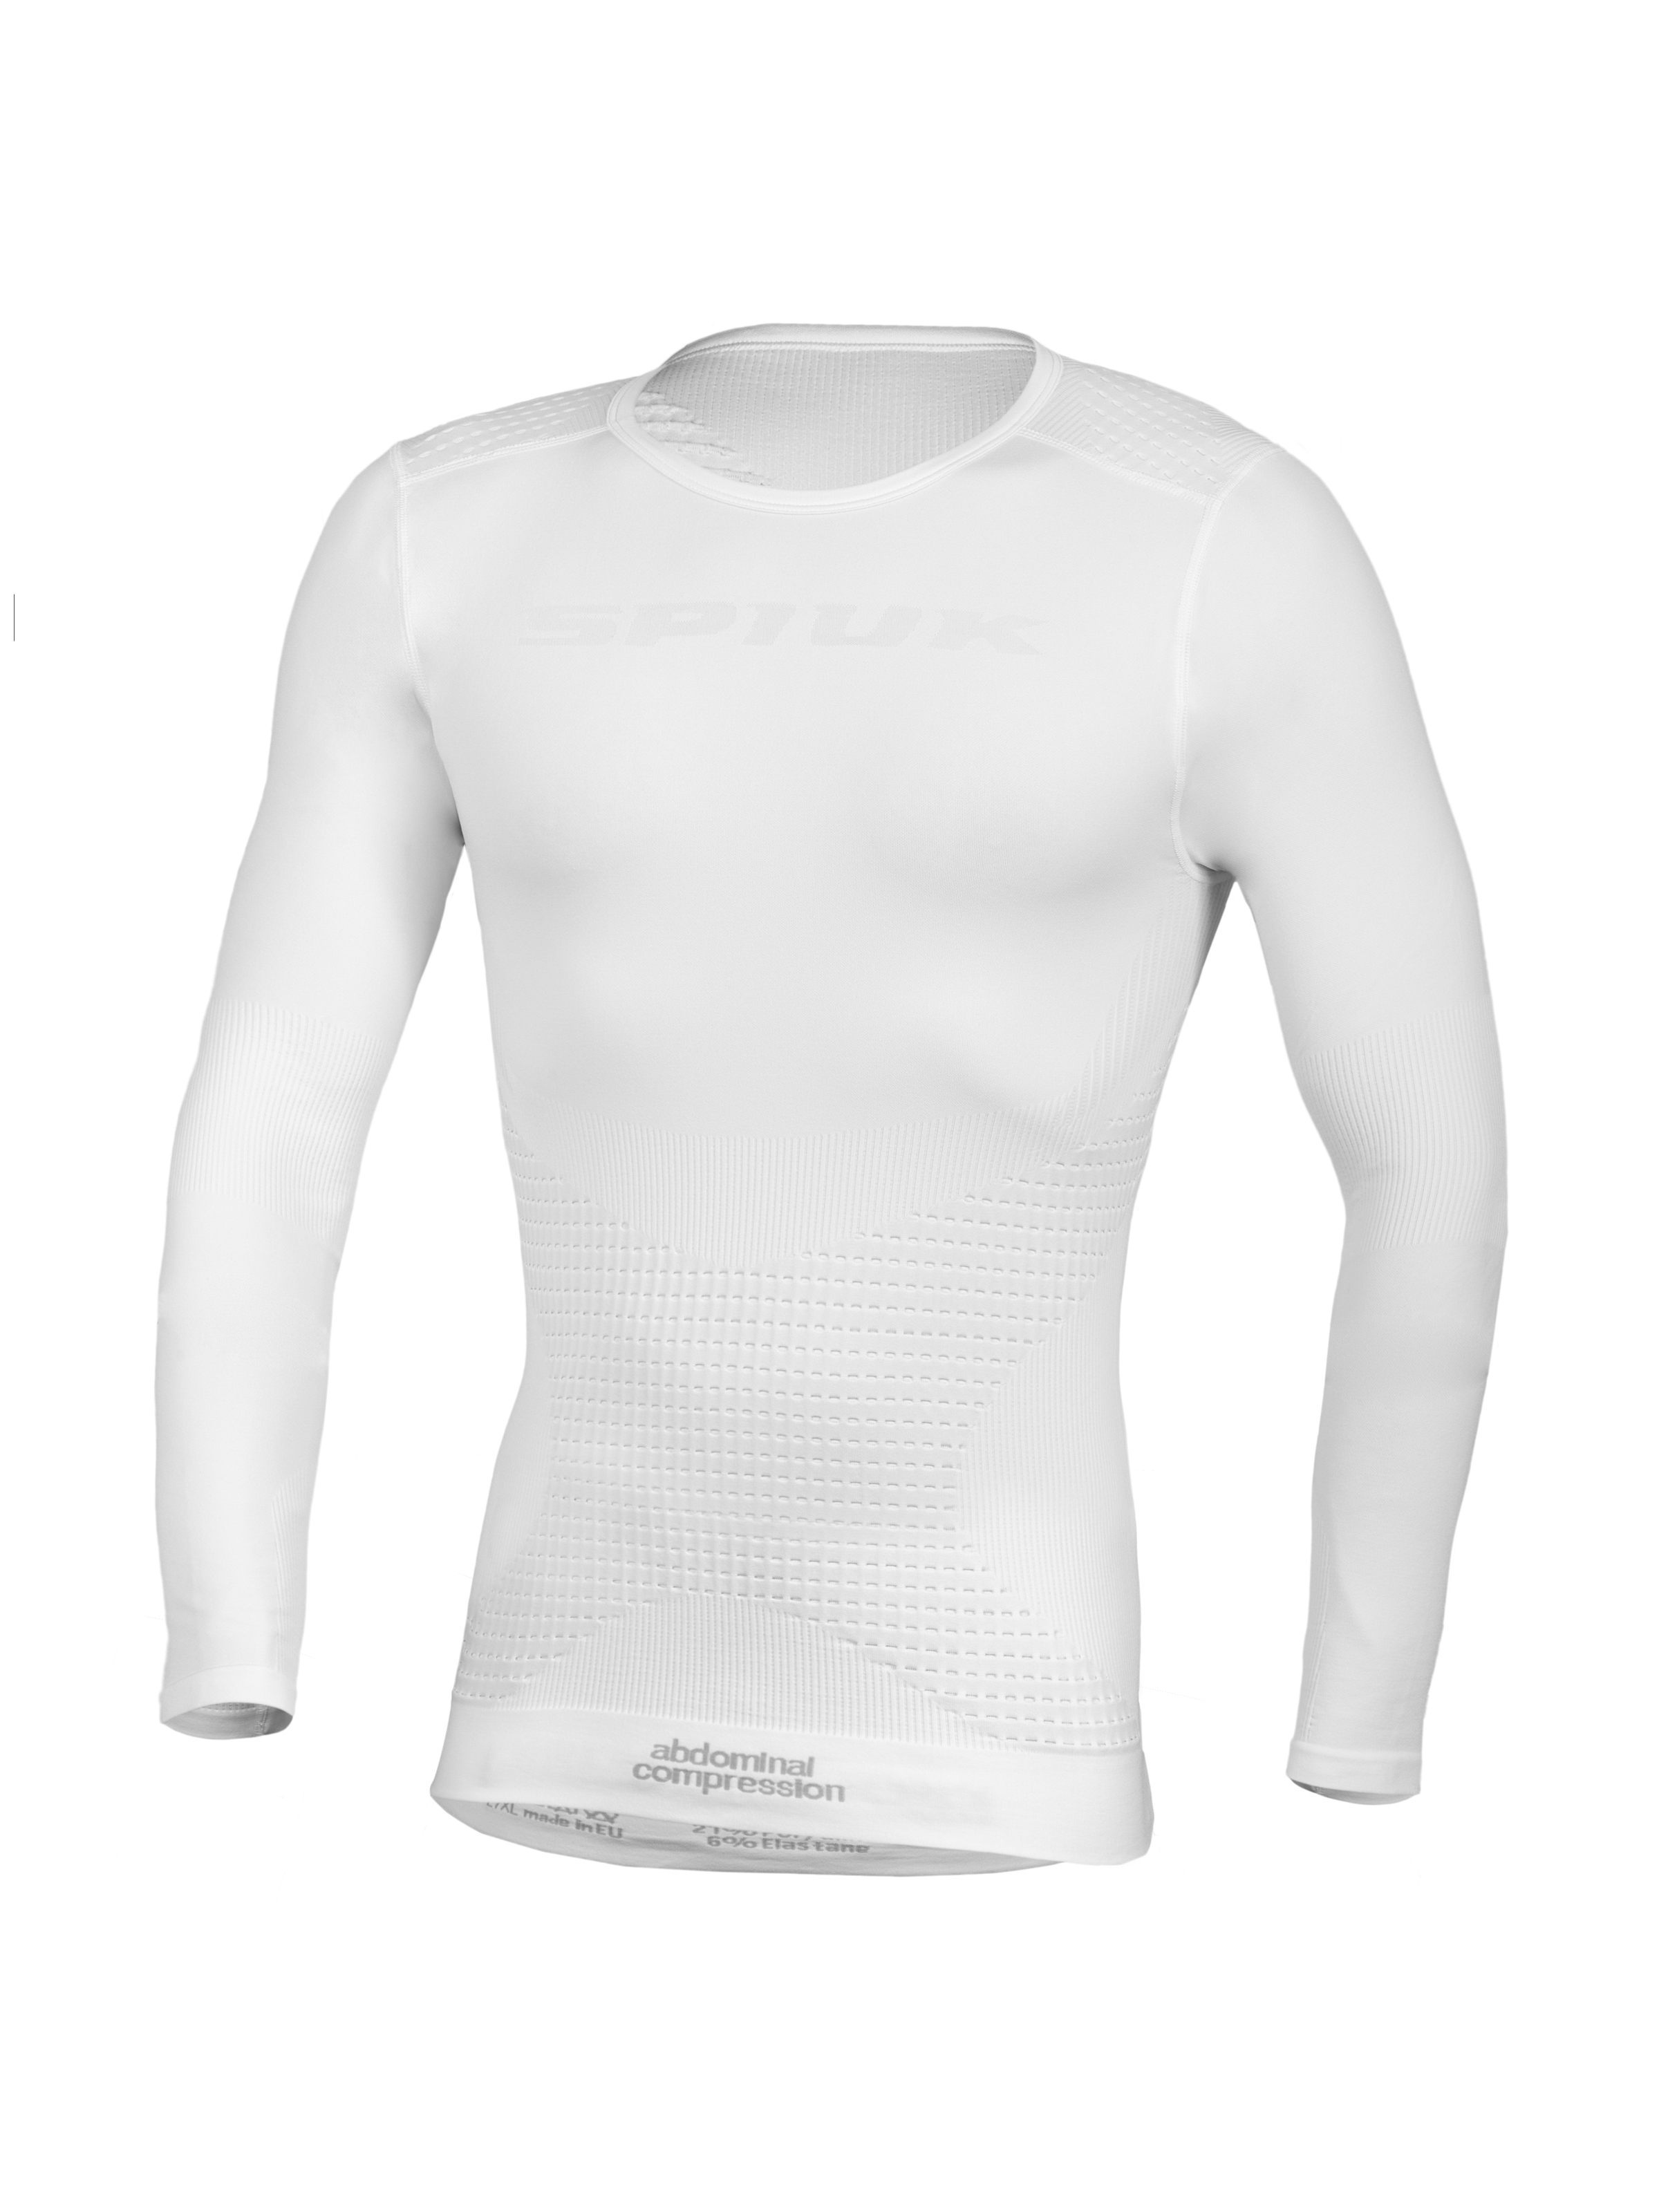 Spiuk Sportline Camiseta M/l Top Ten Unisex Blanco  L/xl